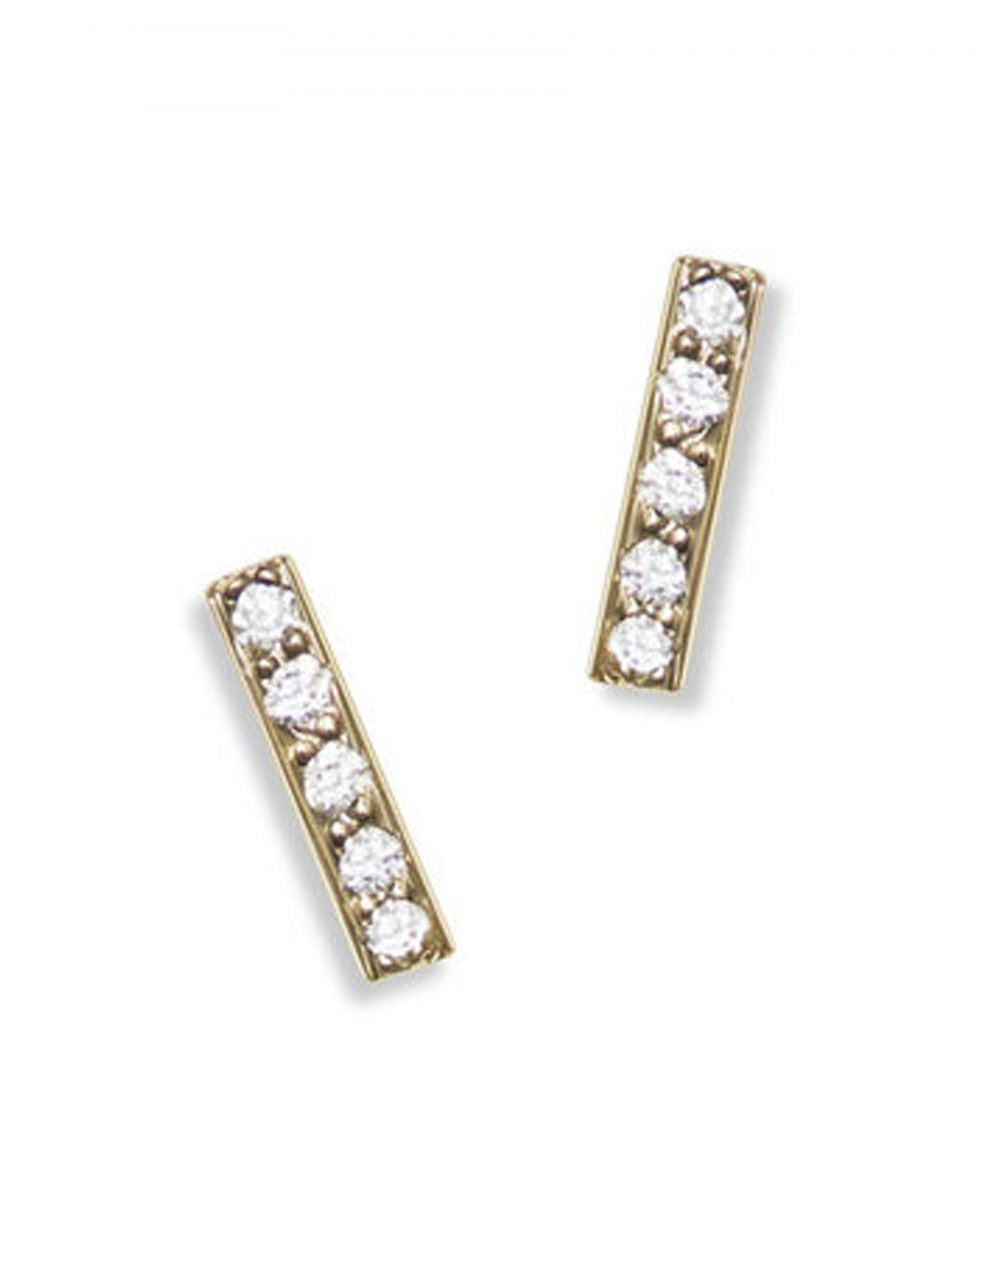 Mini Pavé Bar Stud<br /><i><small>14K Yellow Gold with White Diamonds</small></i><br />